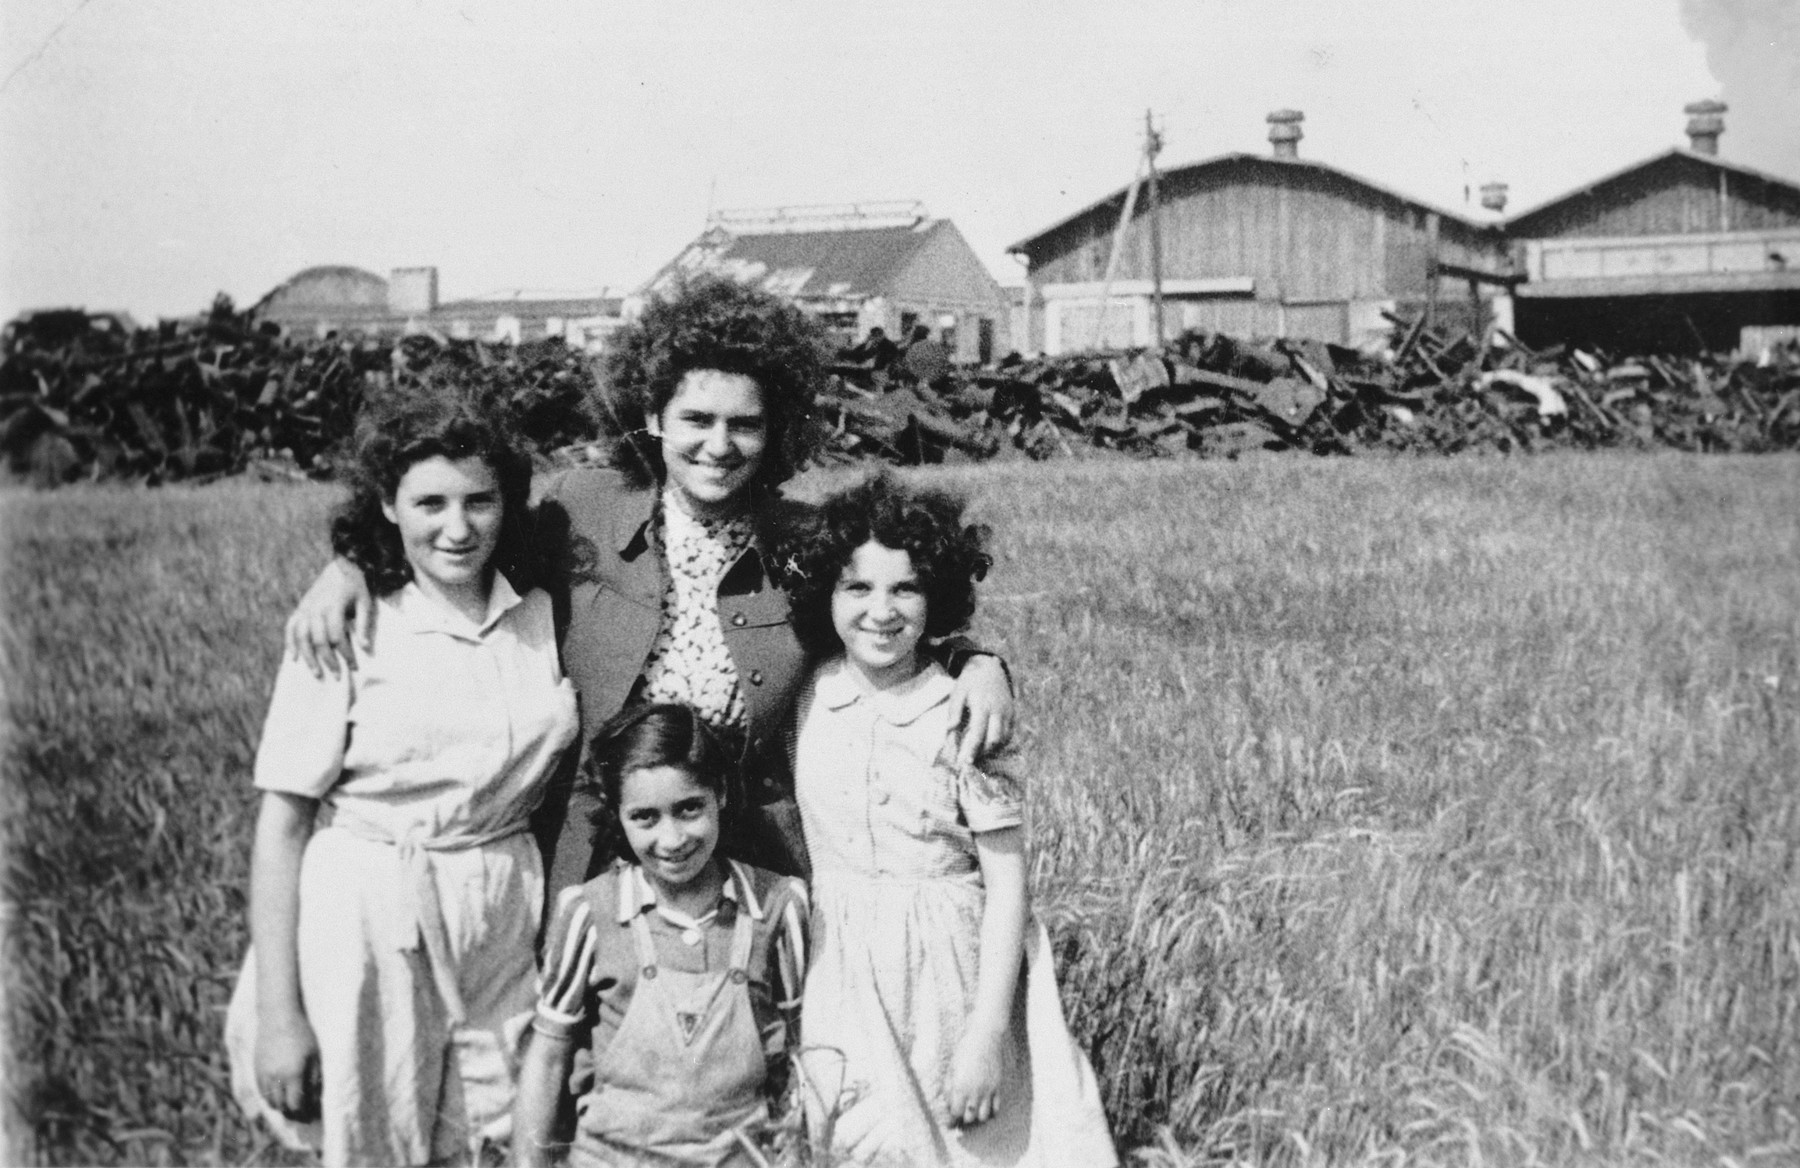 A female counselor poses with three girls in the Rosenheim displaced persons' camp.  Pictured in the back is Fira (Esther) Scapinker.